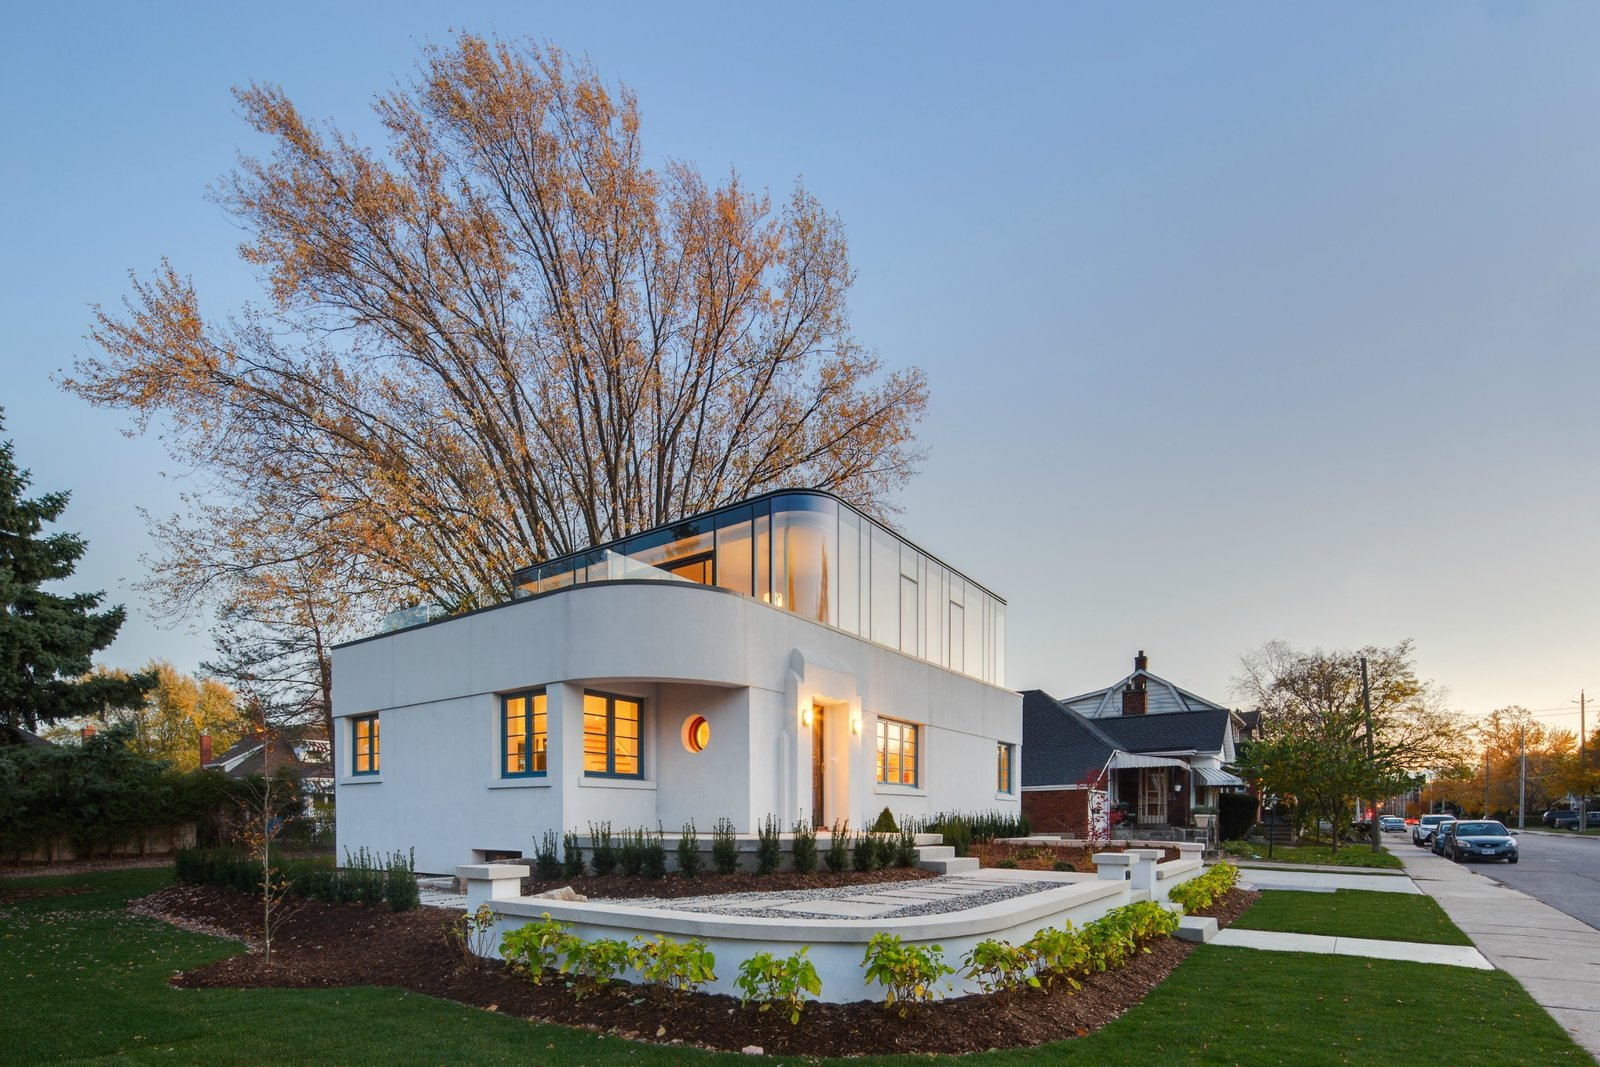 The home's white stucco exterior is actually a thin layer of stucco spread over a modern EIFS (Exterior Insulation and Finishing System) from Dryvit.  Minimalist Facades We Love by Zachary Edelson from Art Moderne